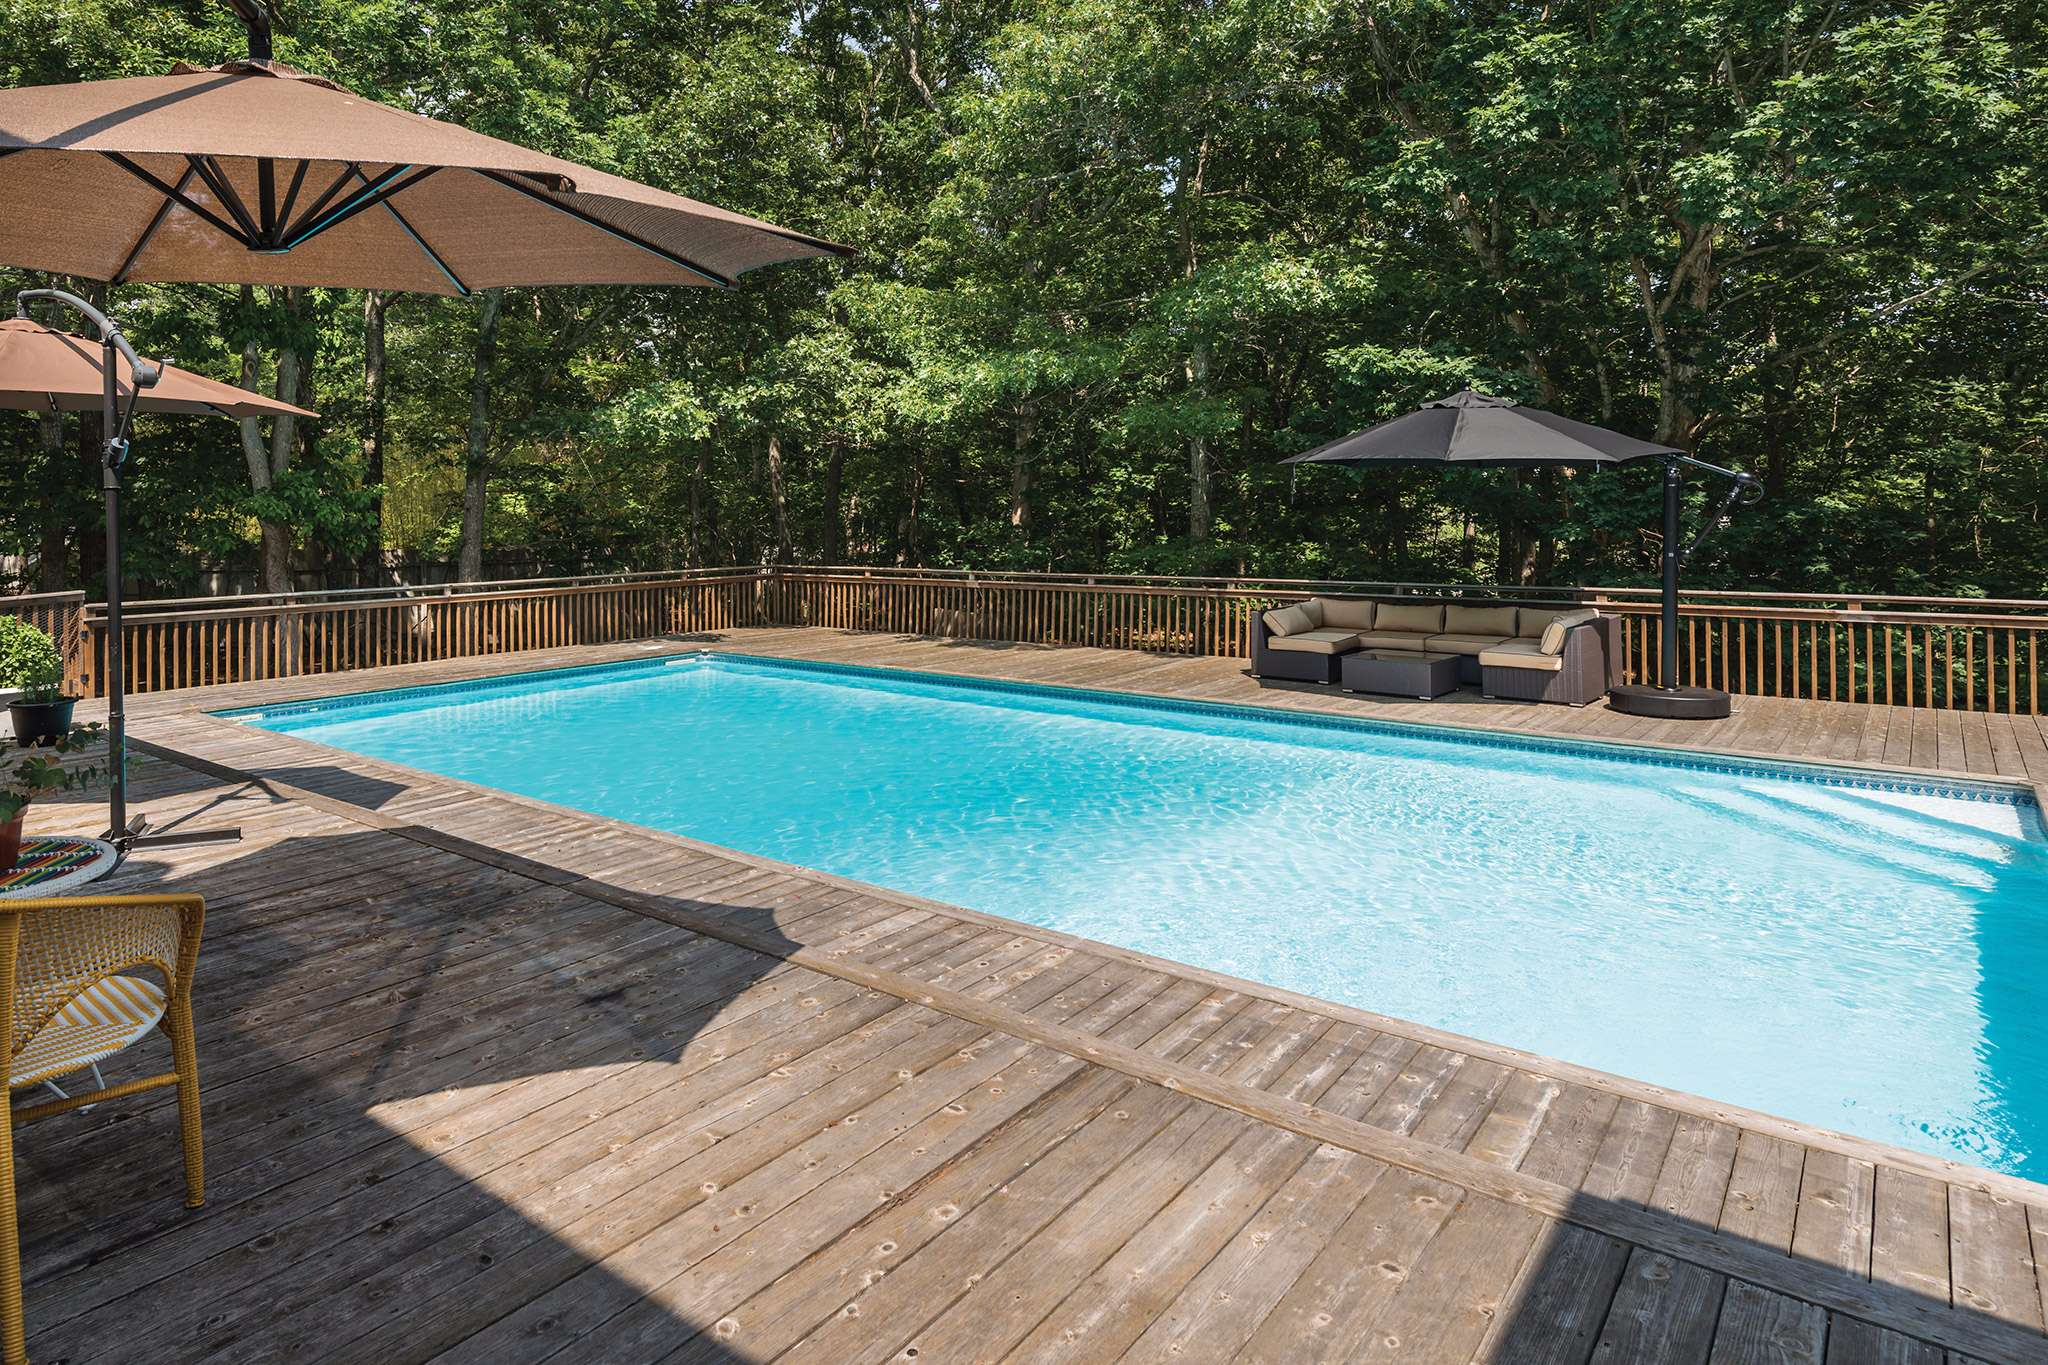 Single Family Home for Sale at Best Value With Beach Access 14 Masthead Lane, East Hampton, New York